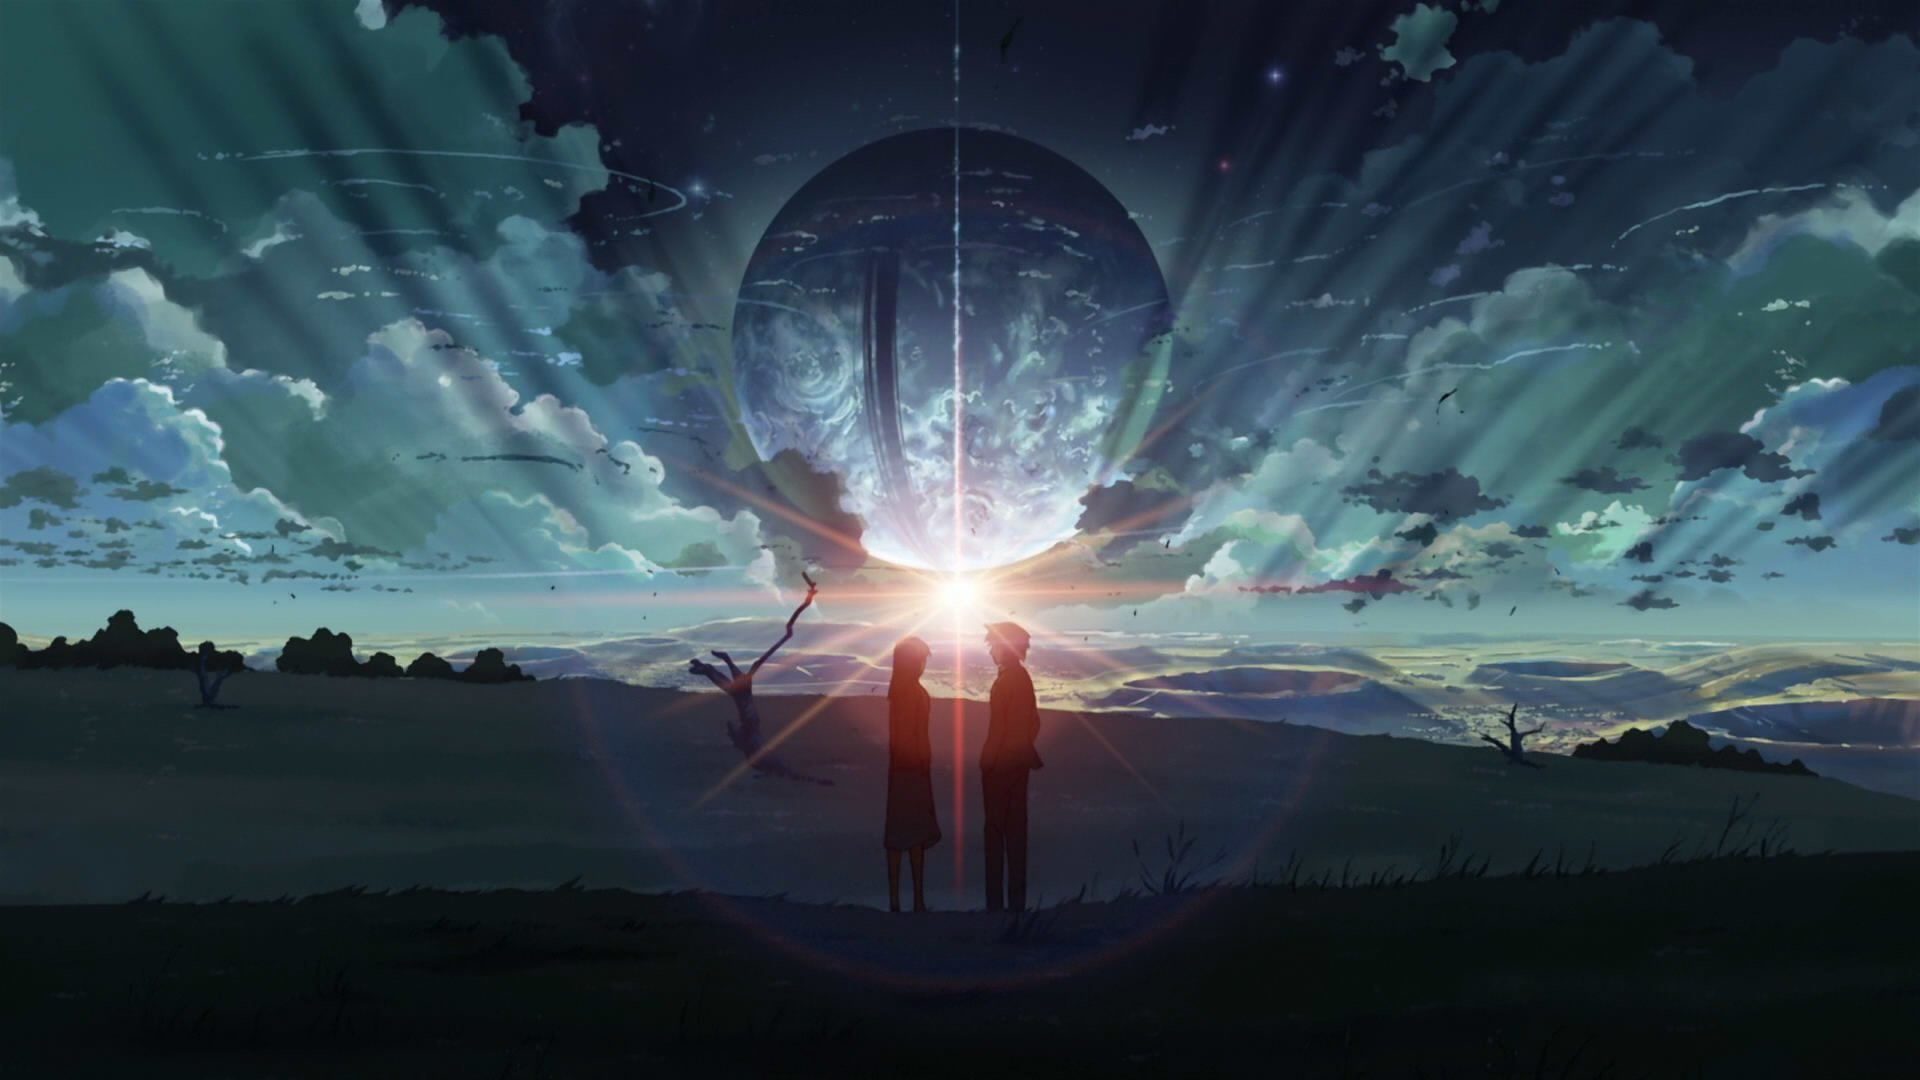 171 5 Centimeters Per Second Hd Wallpapers Background Images